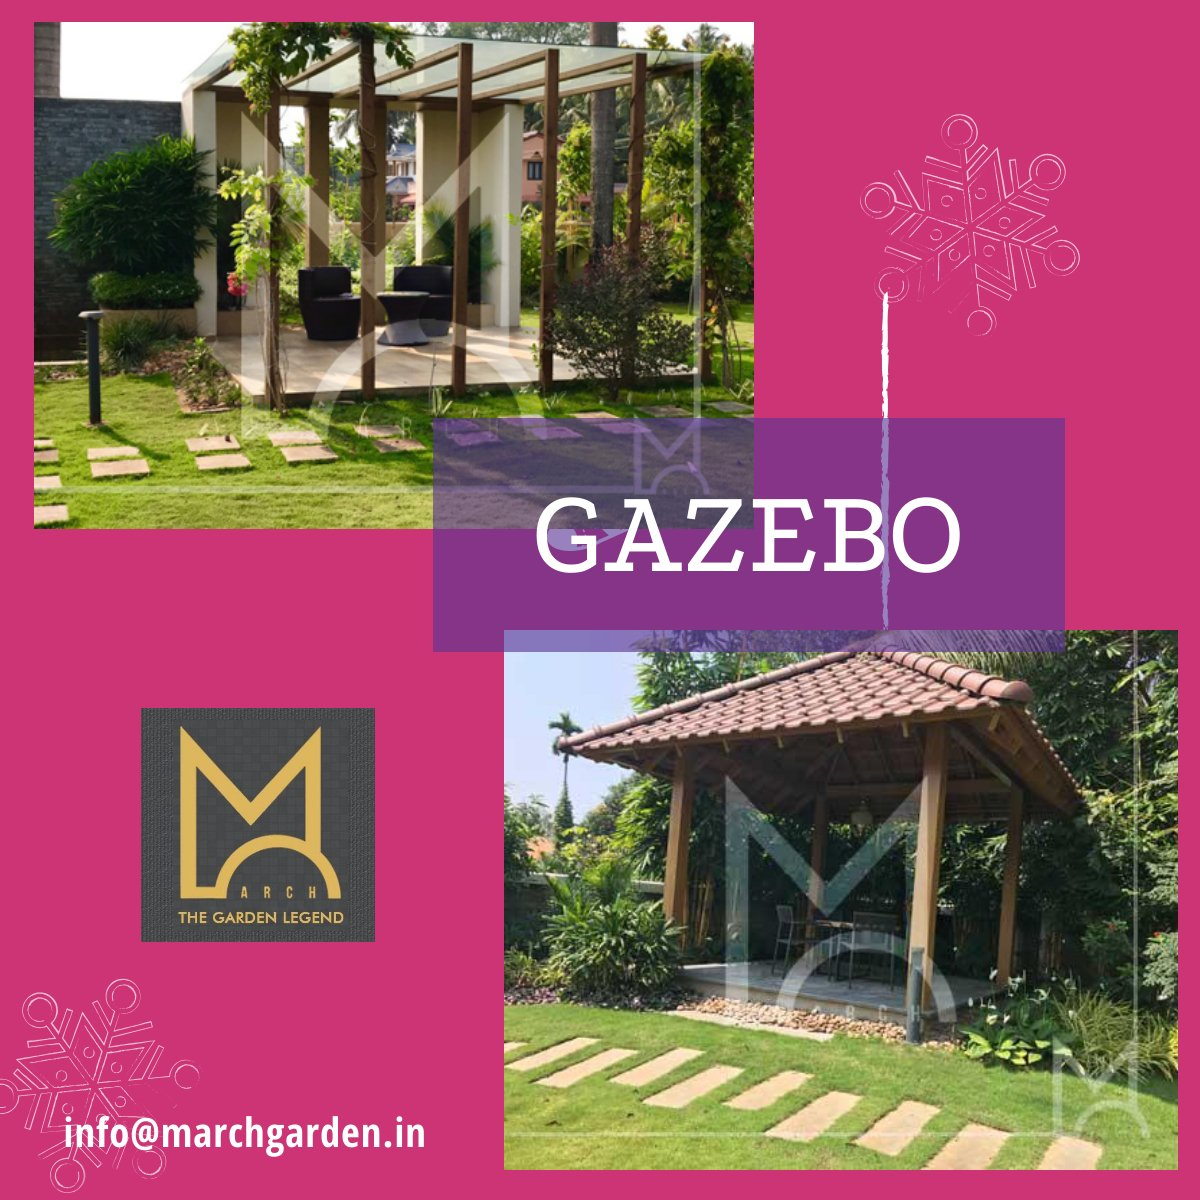 Vertical Garden Design With Gazebo Installation Gazebo Designs Thrissur, Kerala http:--www.m-archgarden.com Call us on :  9633422334 Email : info@m-archgarden.com LANDSCAPING AND GARDENING --u003eu003e  M-ARCH ...